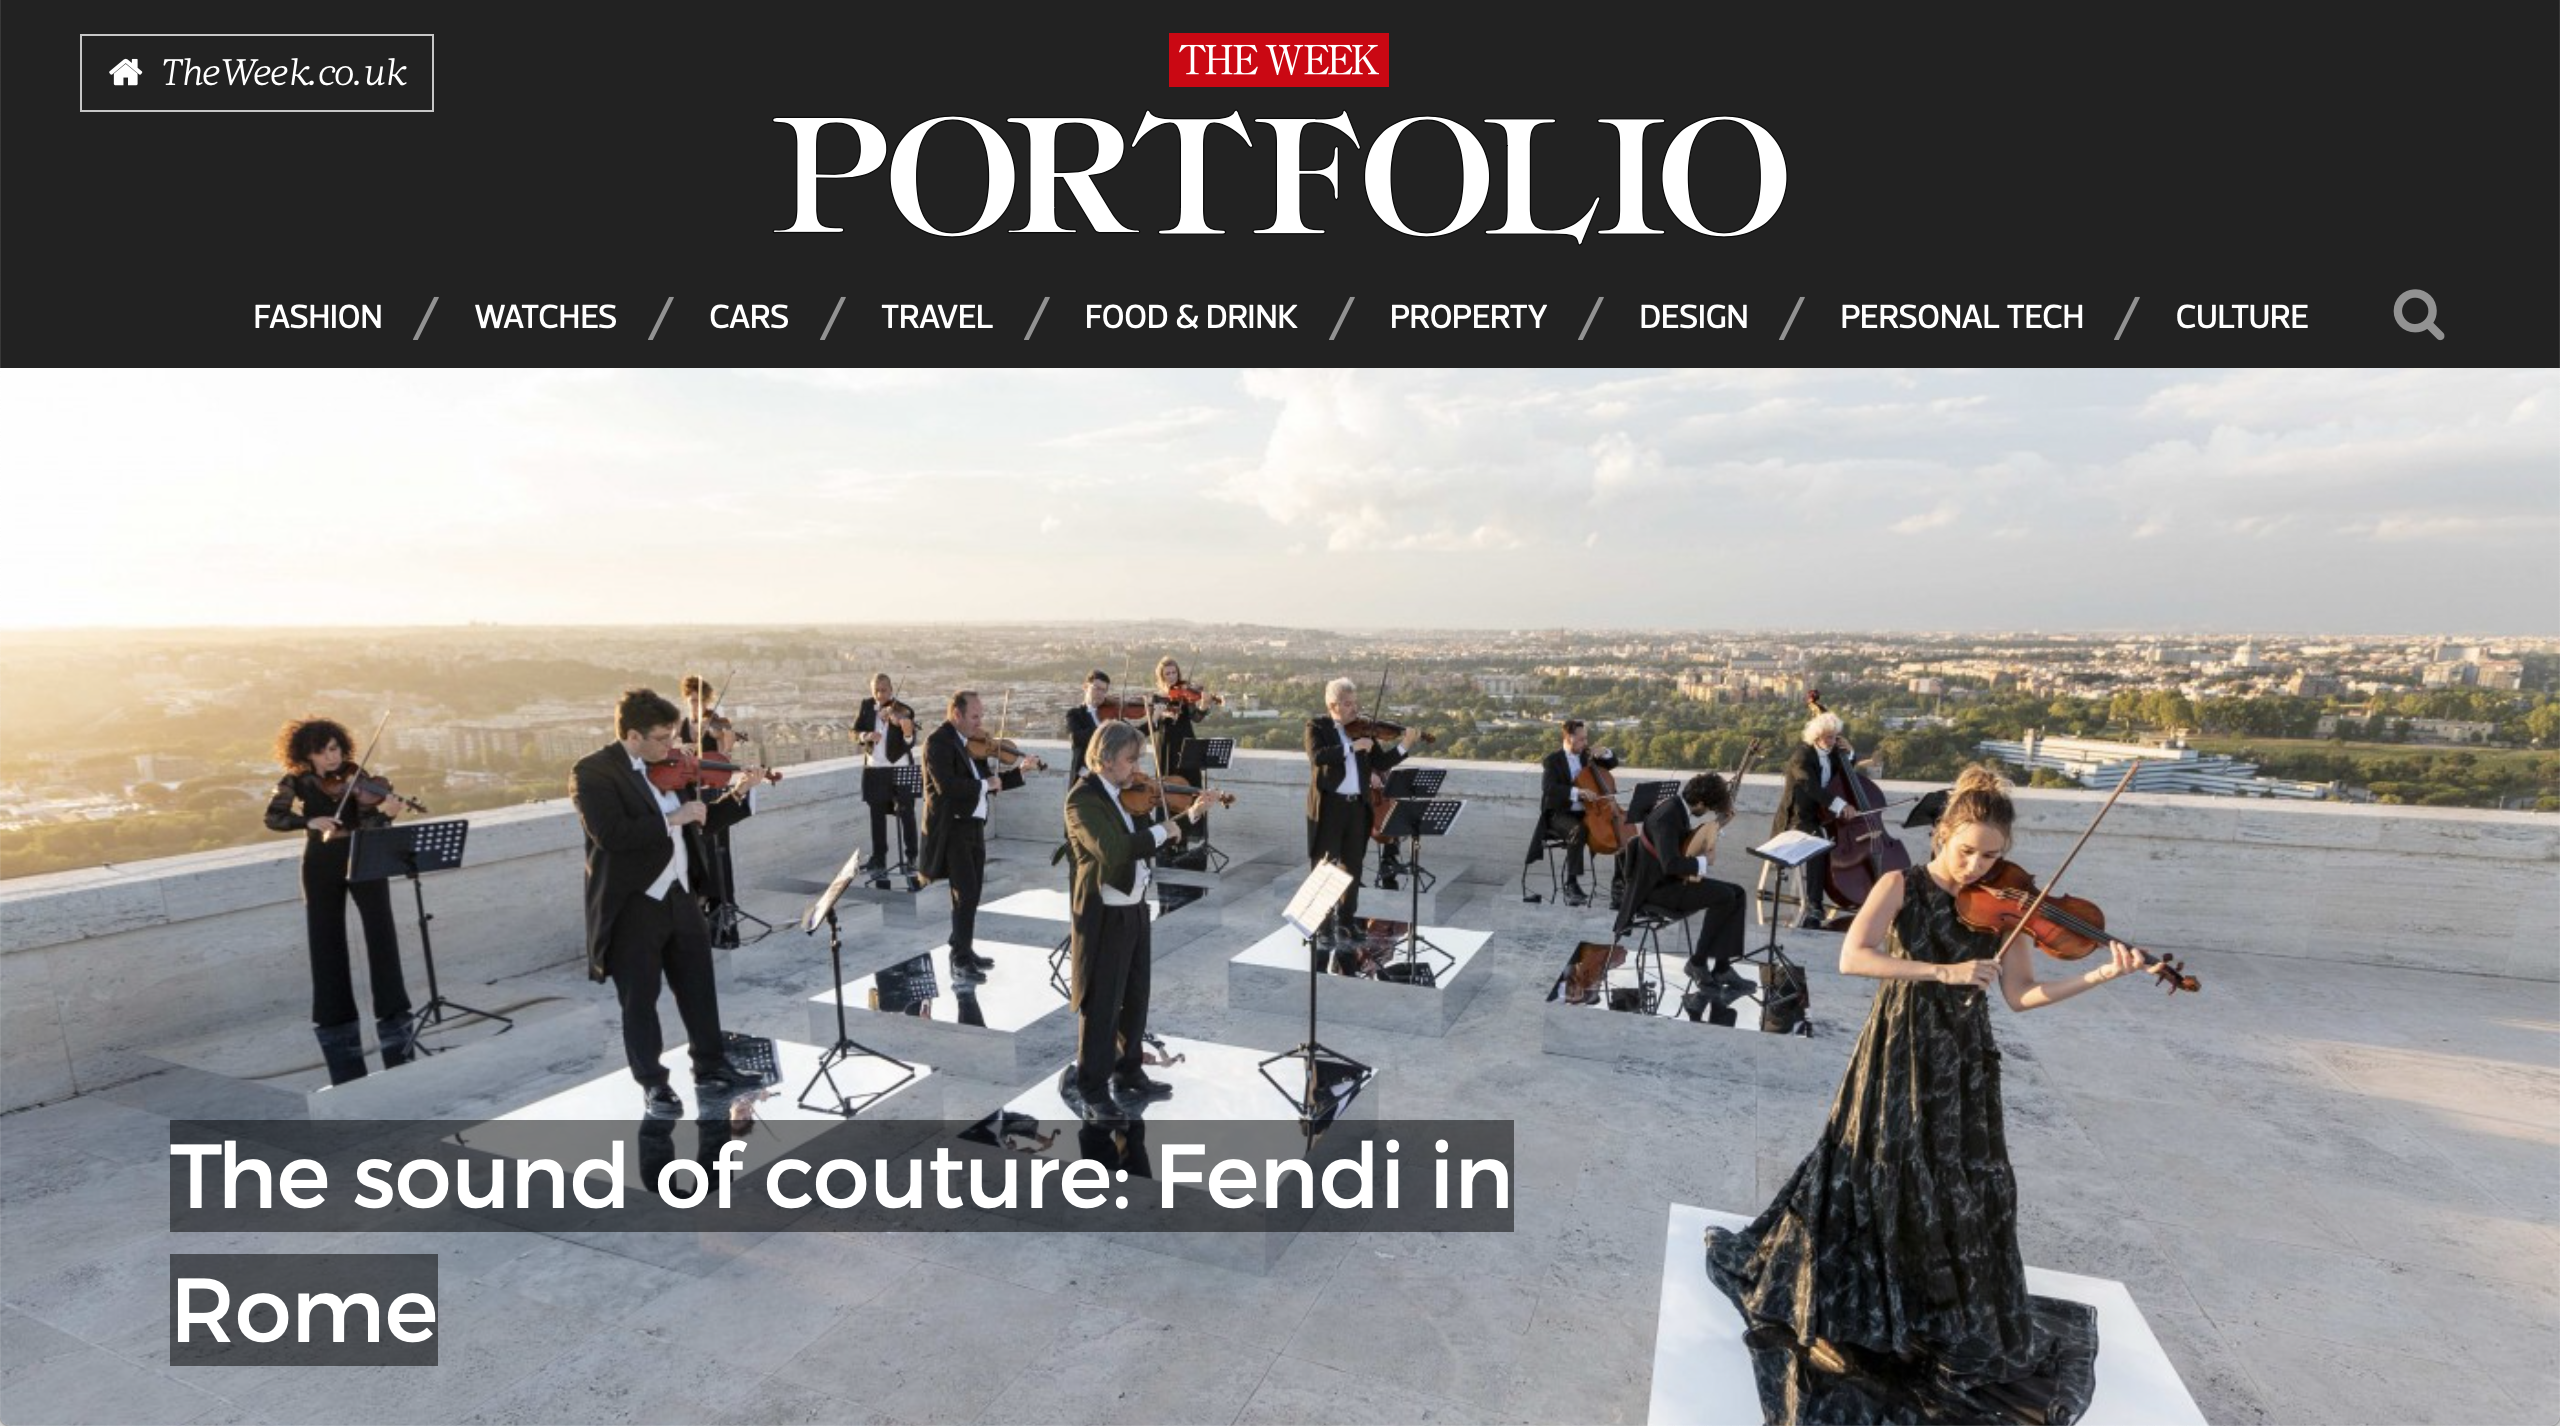 The Sound of Couture: Fendi in Rome - THE WEEK FASHION June 2020